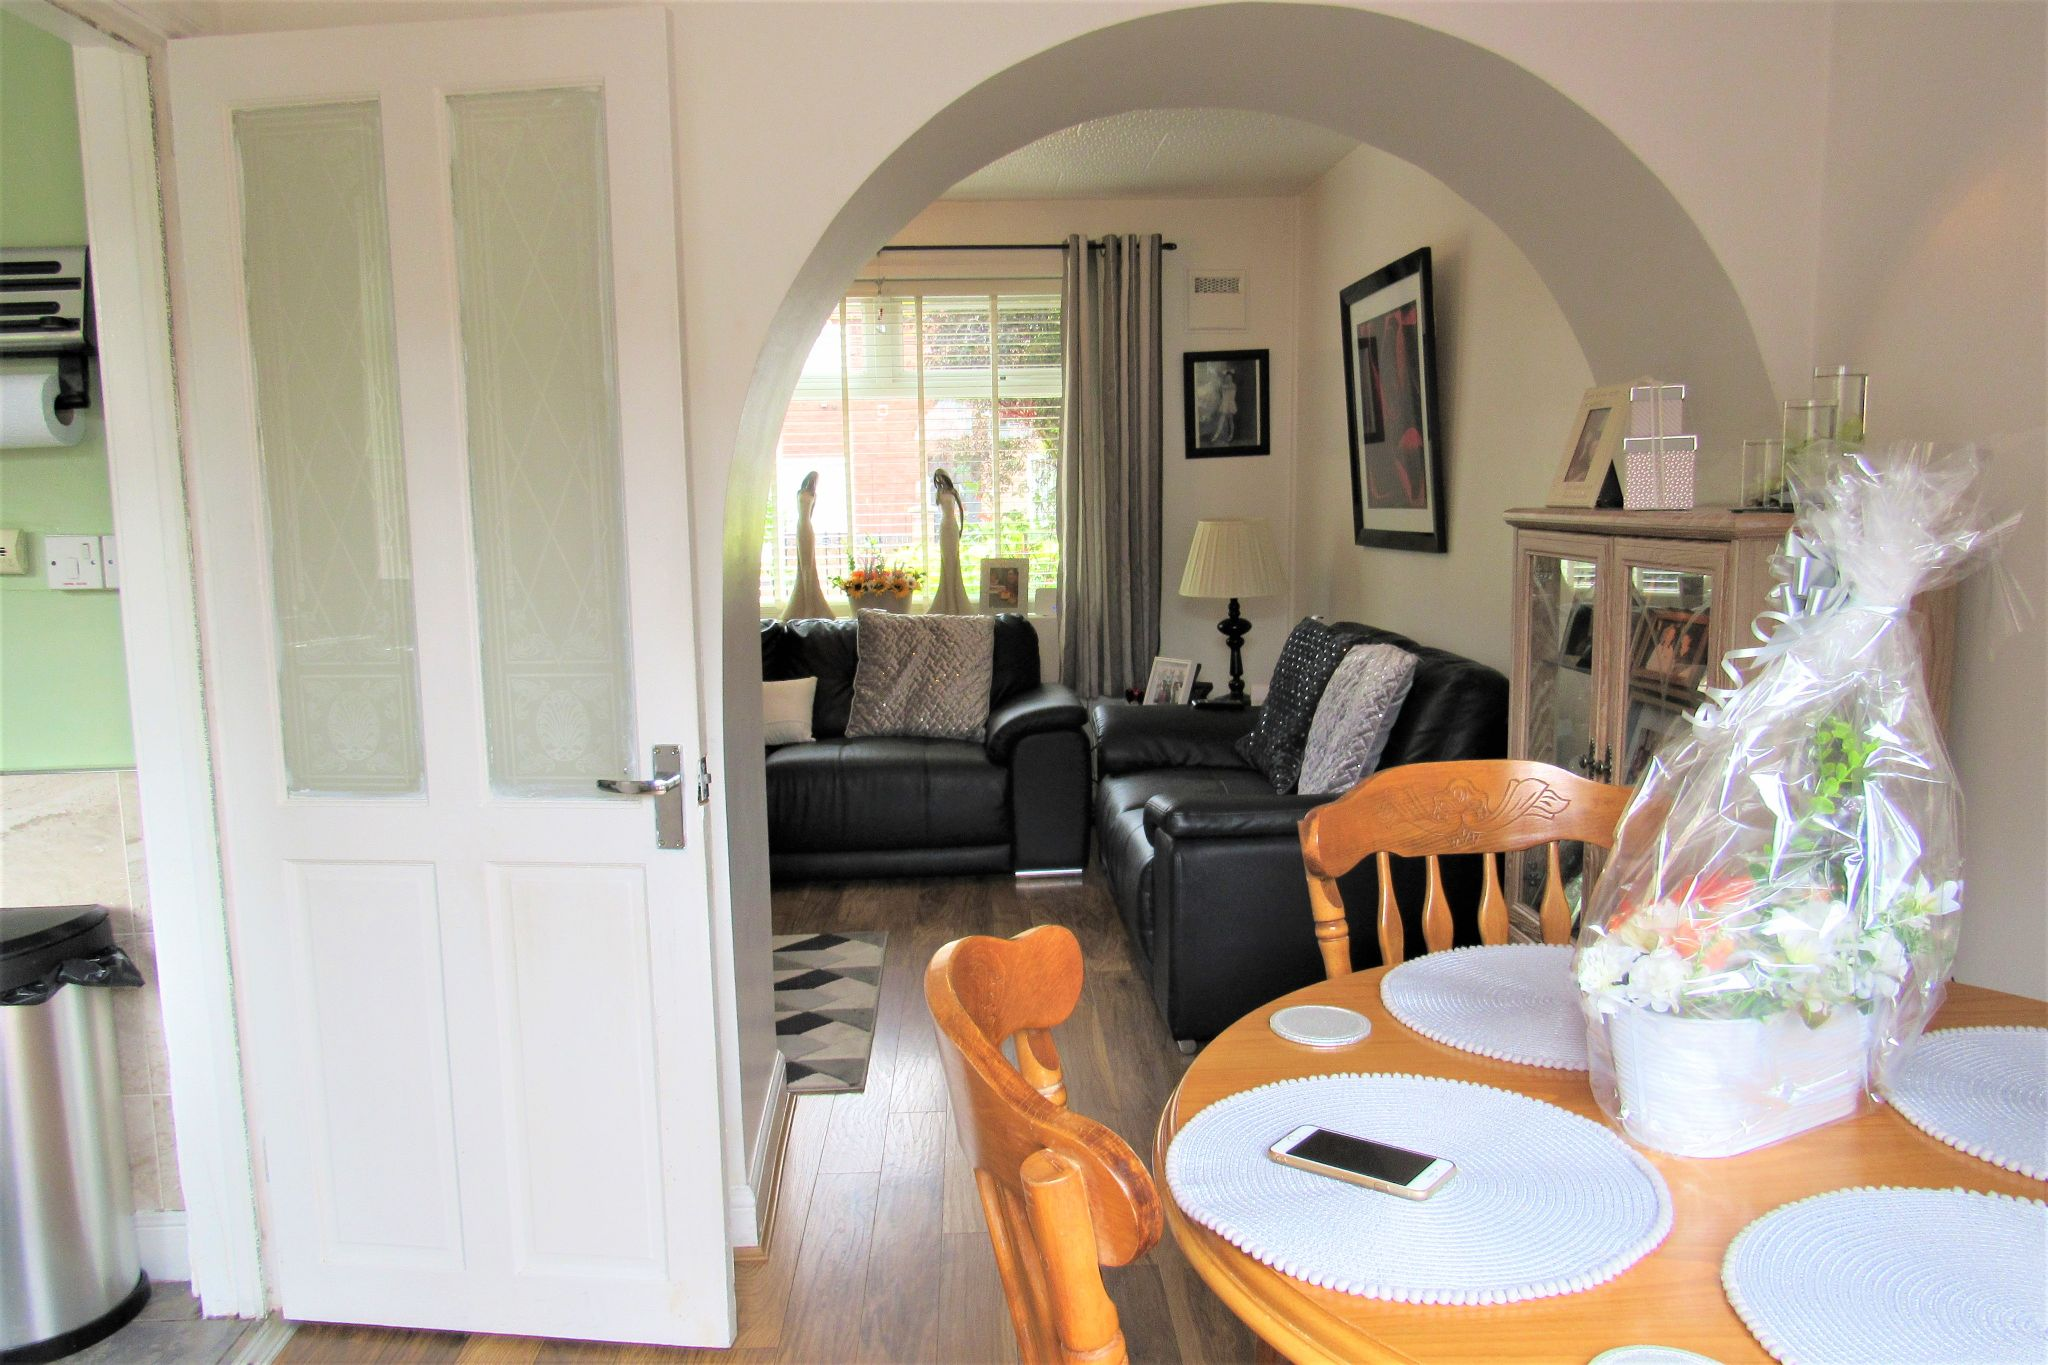 3 bedroom mid terraced house SSTC in Manchester - Photograph 3.